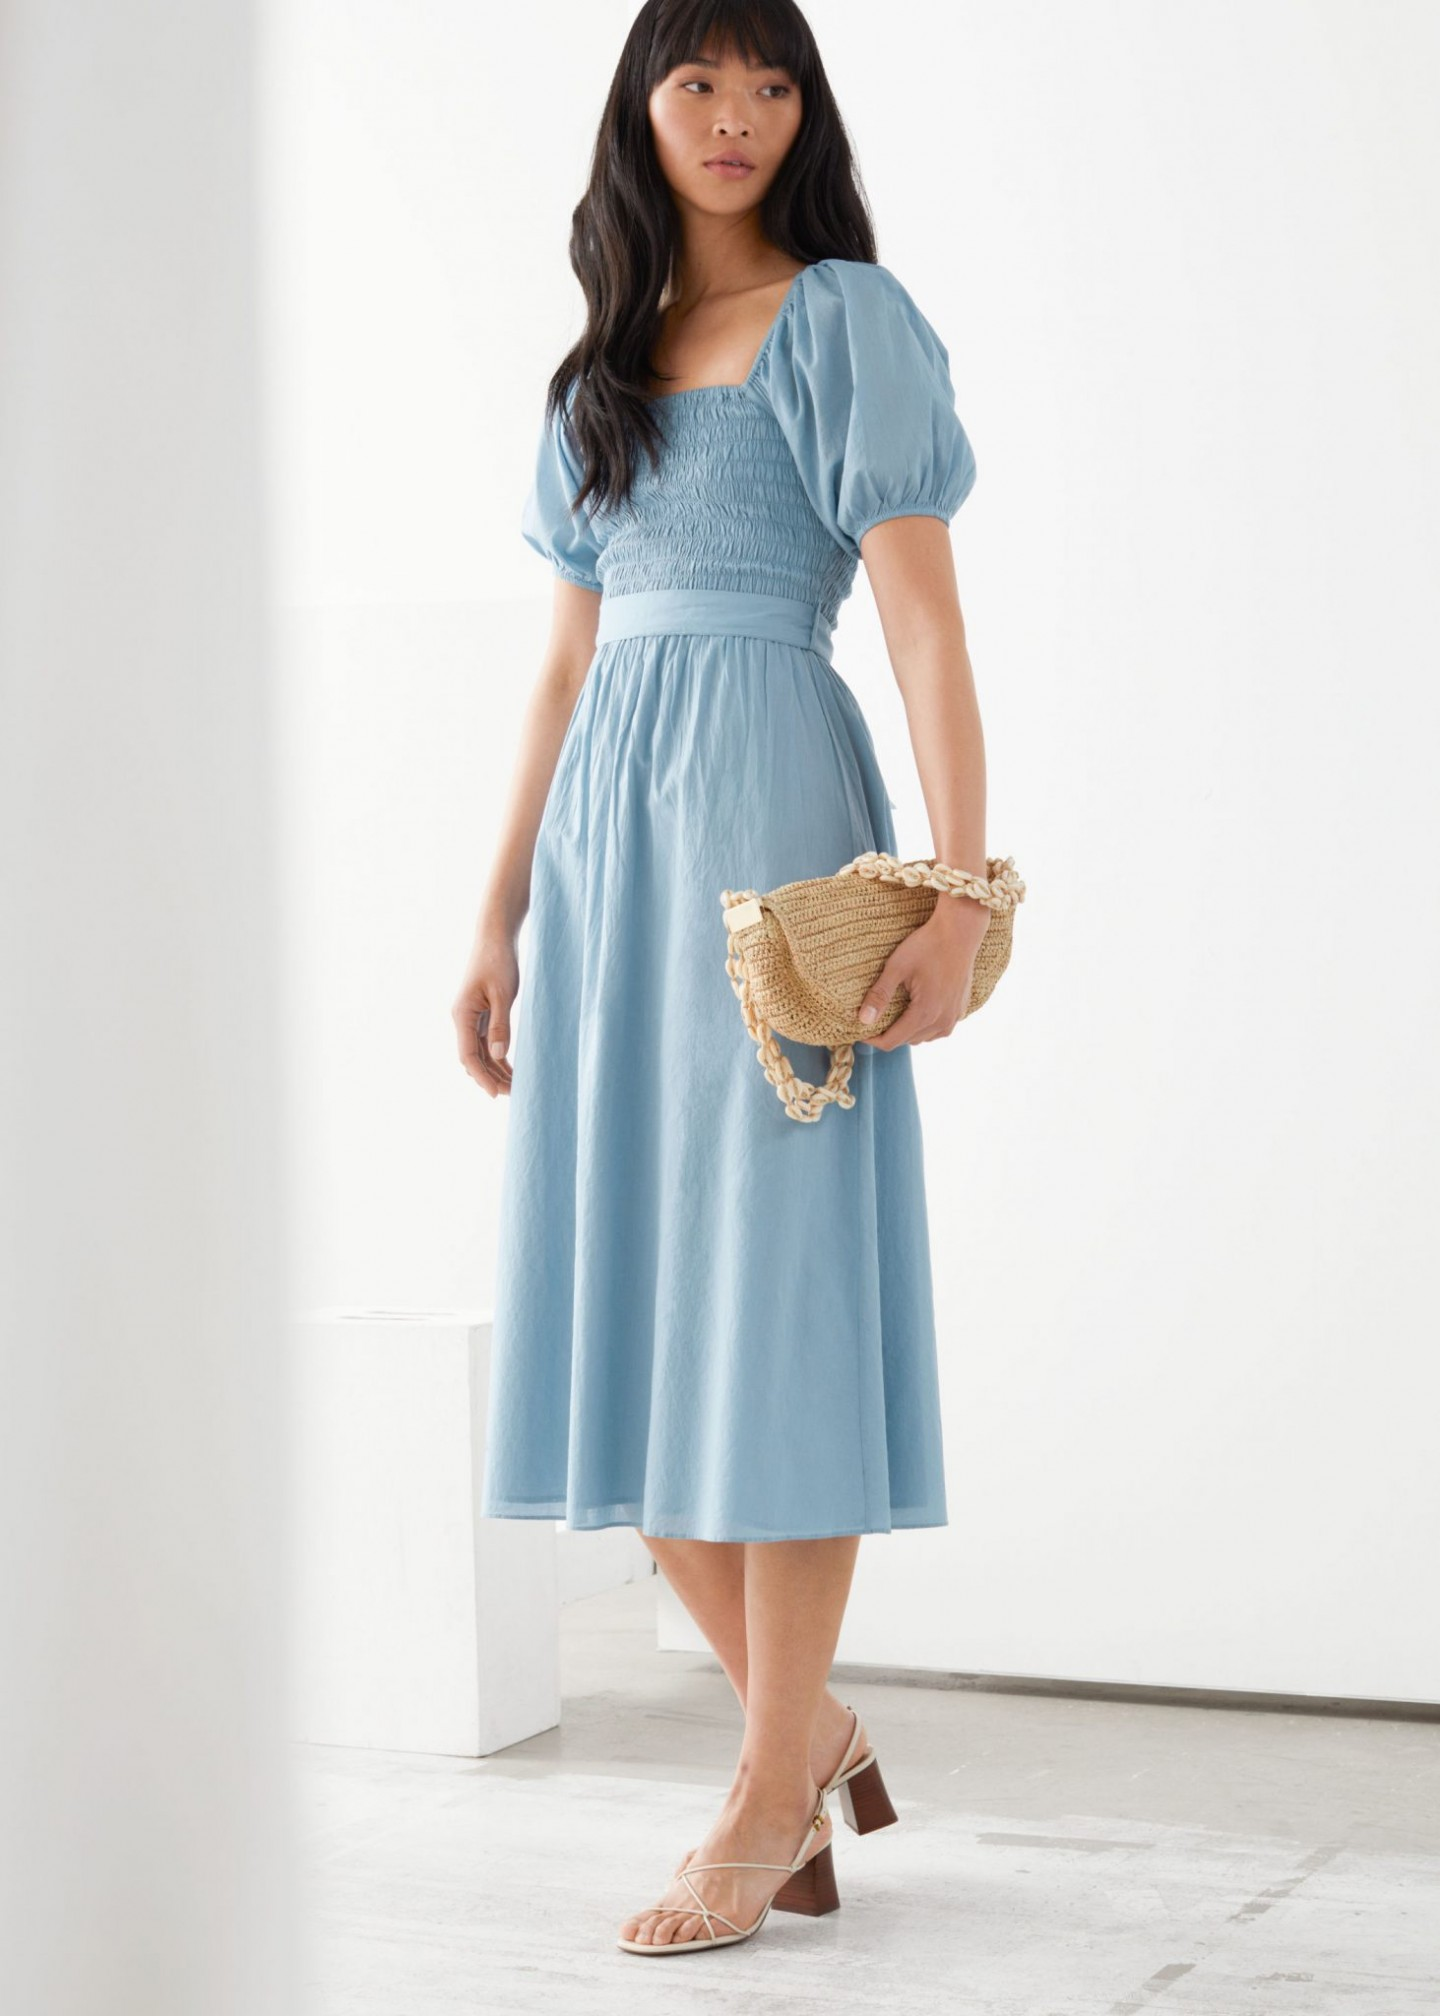 & OTHER STORIES Belted Puff Sleeve Midi Dress